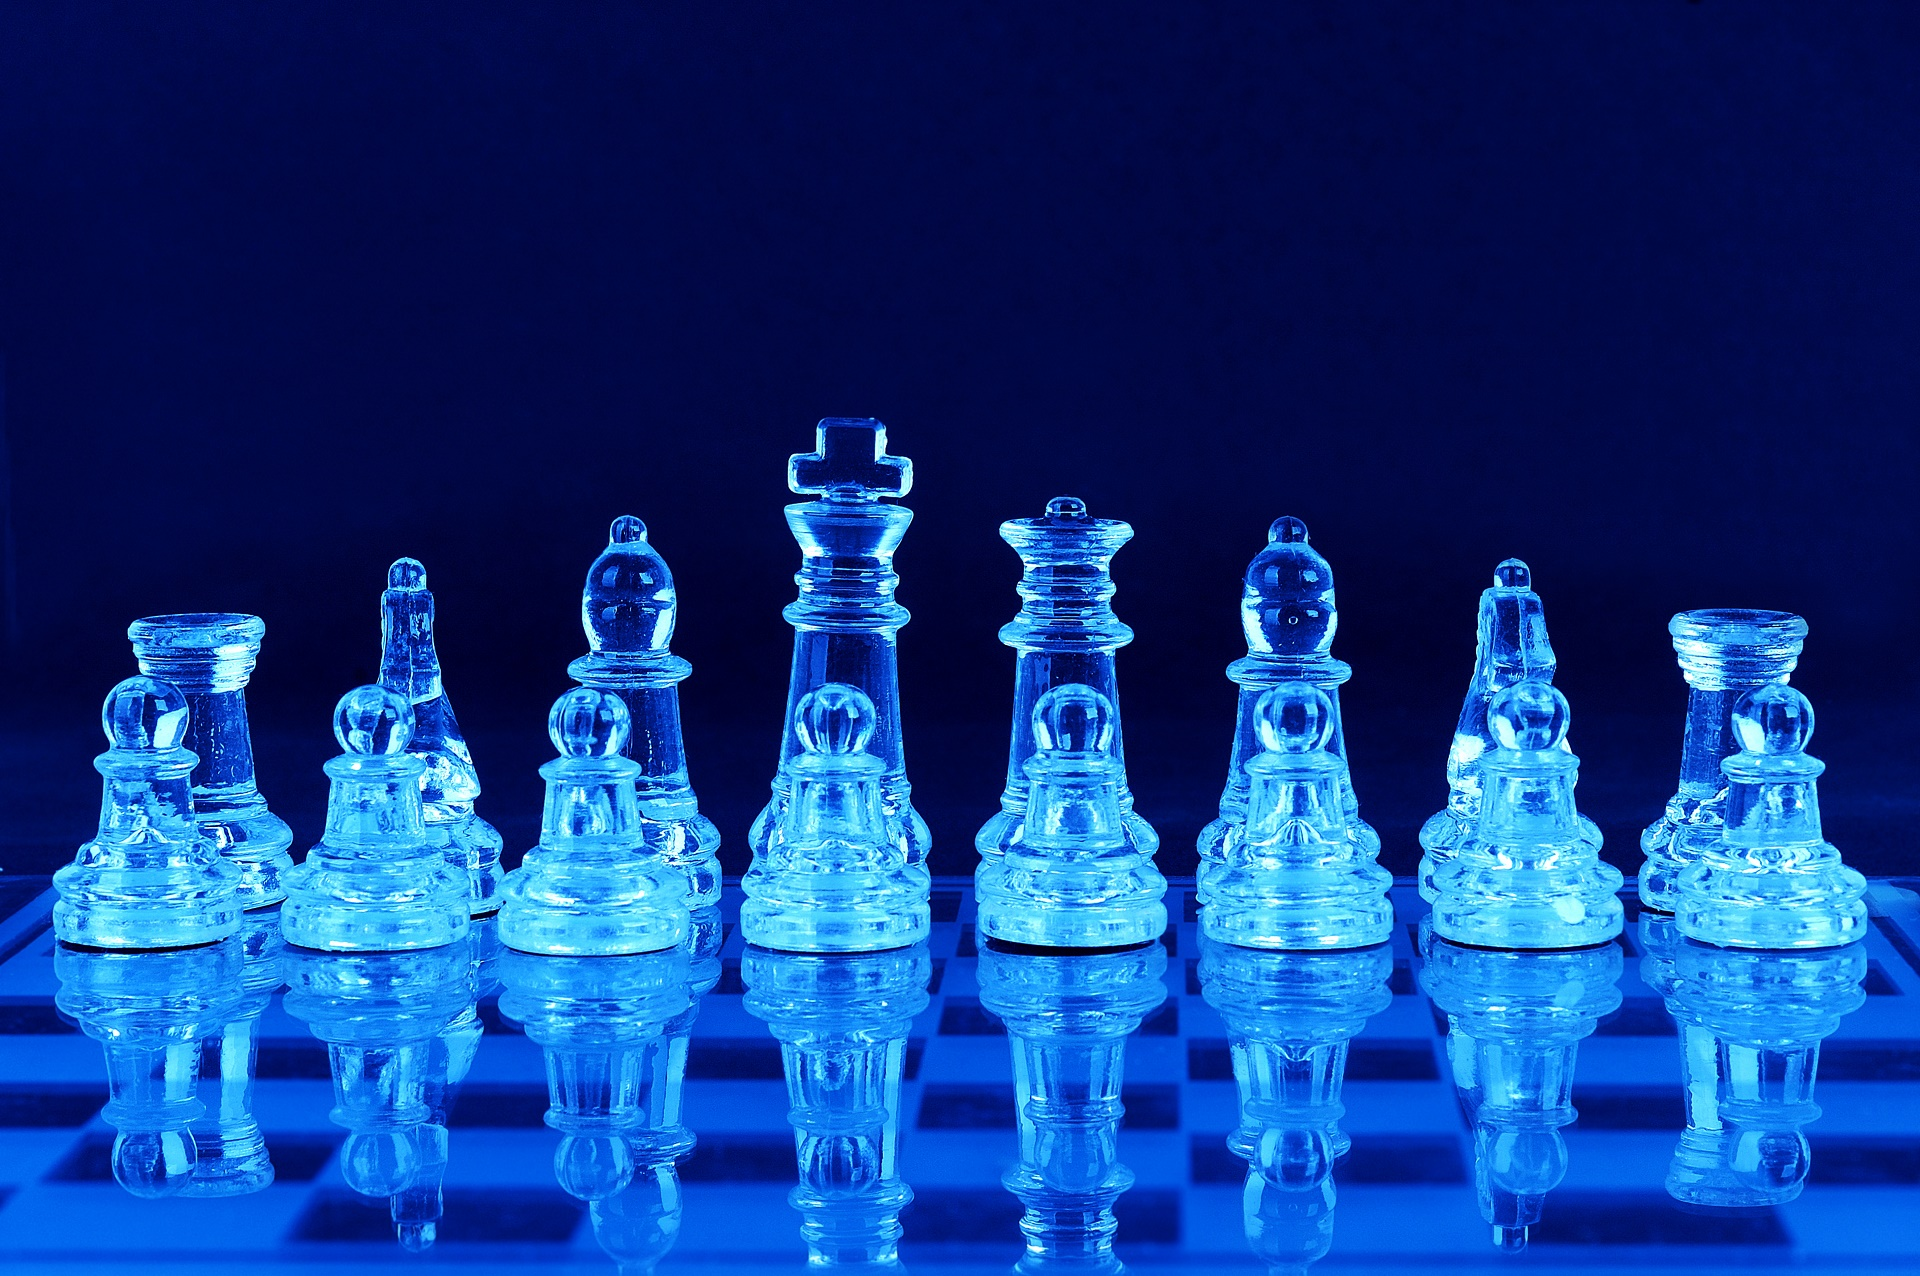 Chess Wallpapers Pictures Images HD Wallpapers Download Free Images Wallpaper [1000image.com]